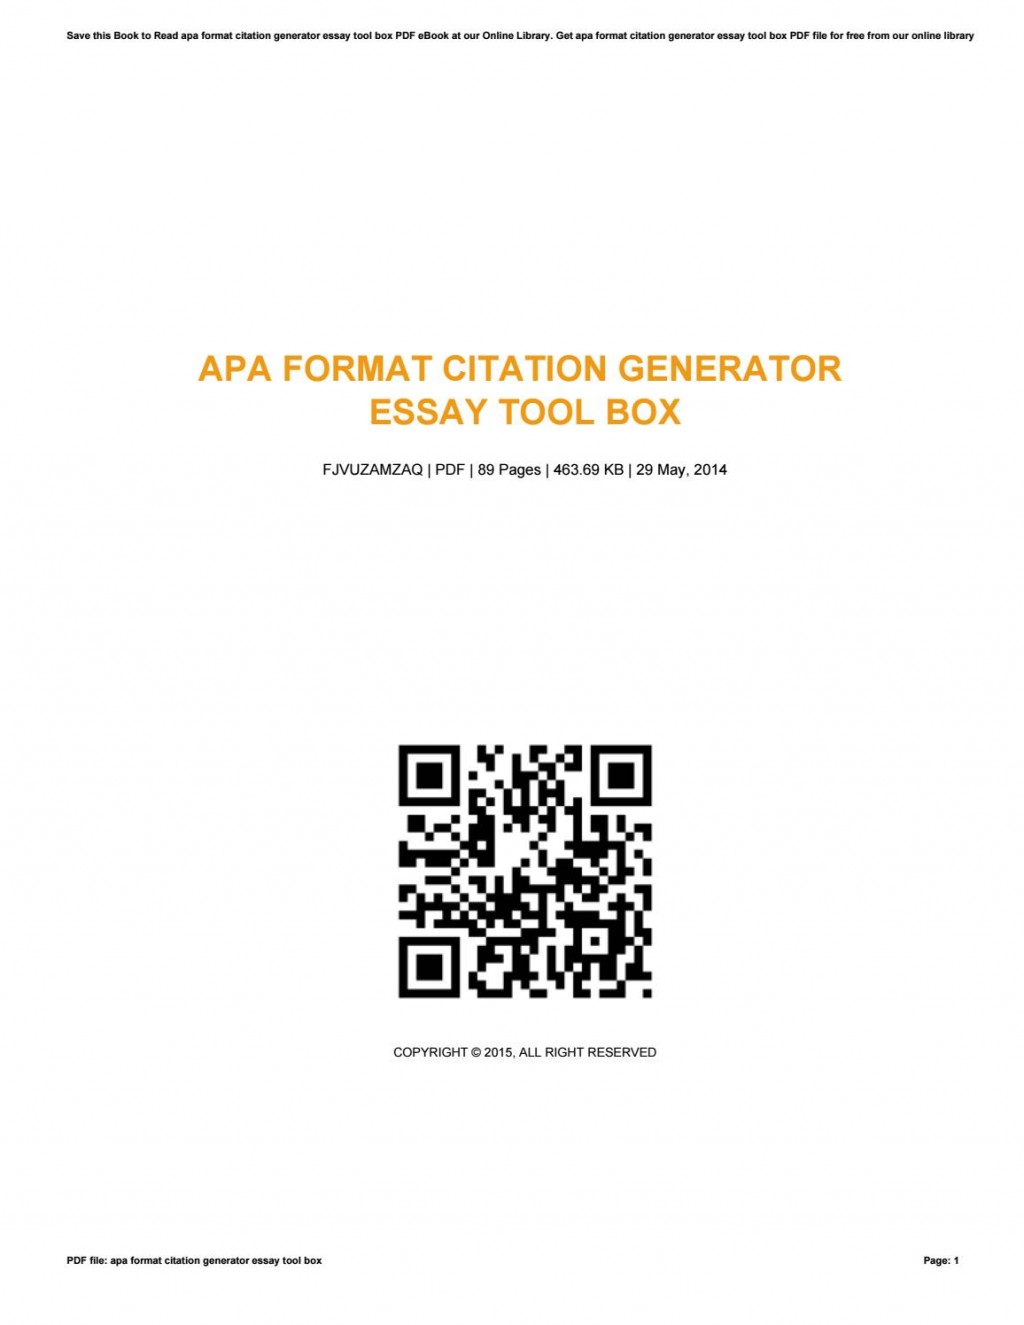 014 Apa Research Paper Citation Generator Page 1 Surprising Format Large